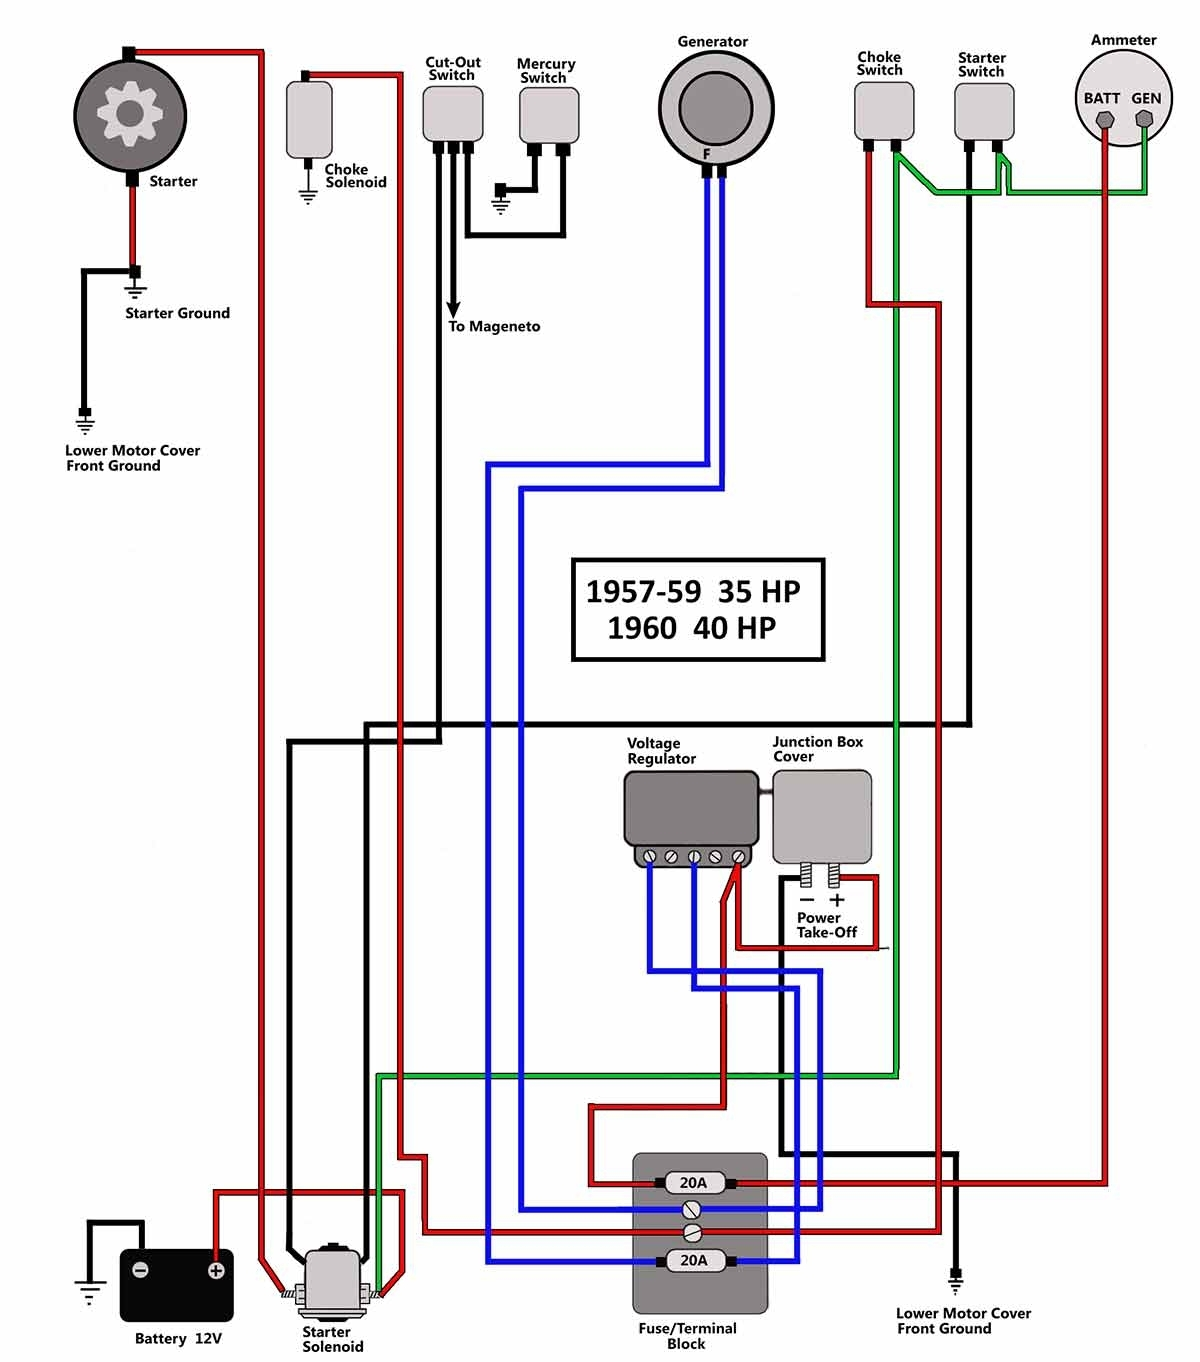 vdo gauges wiring diagrams and boat tach diagram e z go golf cart for boat gauge wiring diagram for tachometer vdo gauges wiring diagrams gauge wiring diagram at gsmportal.co